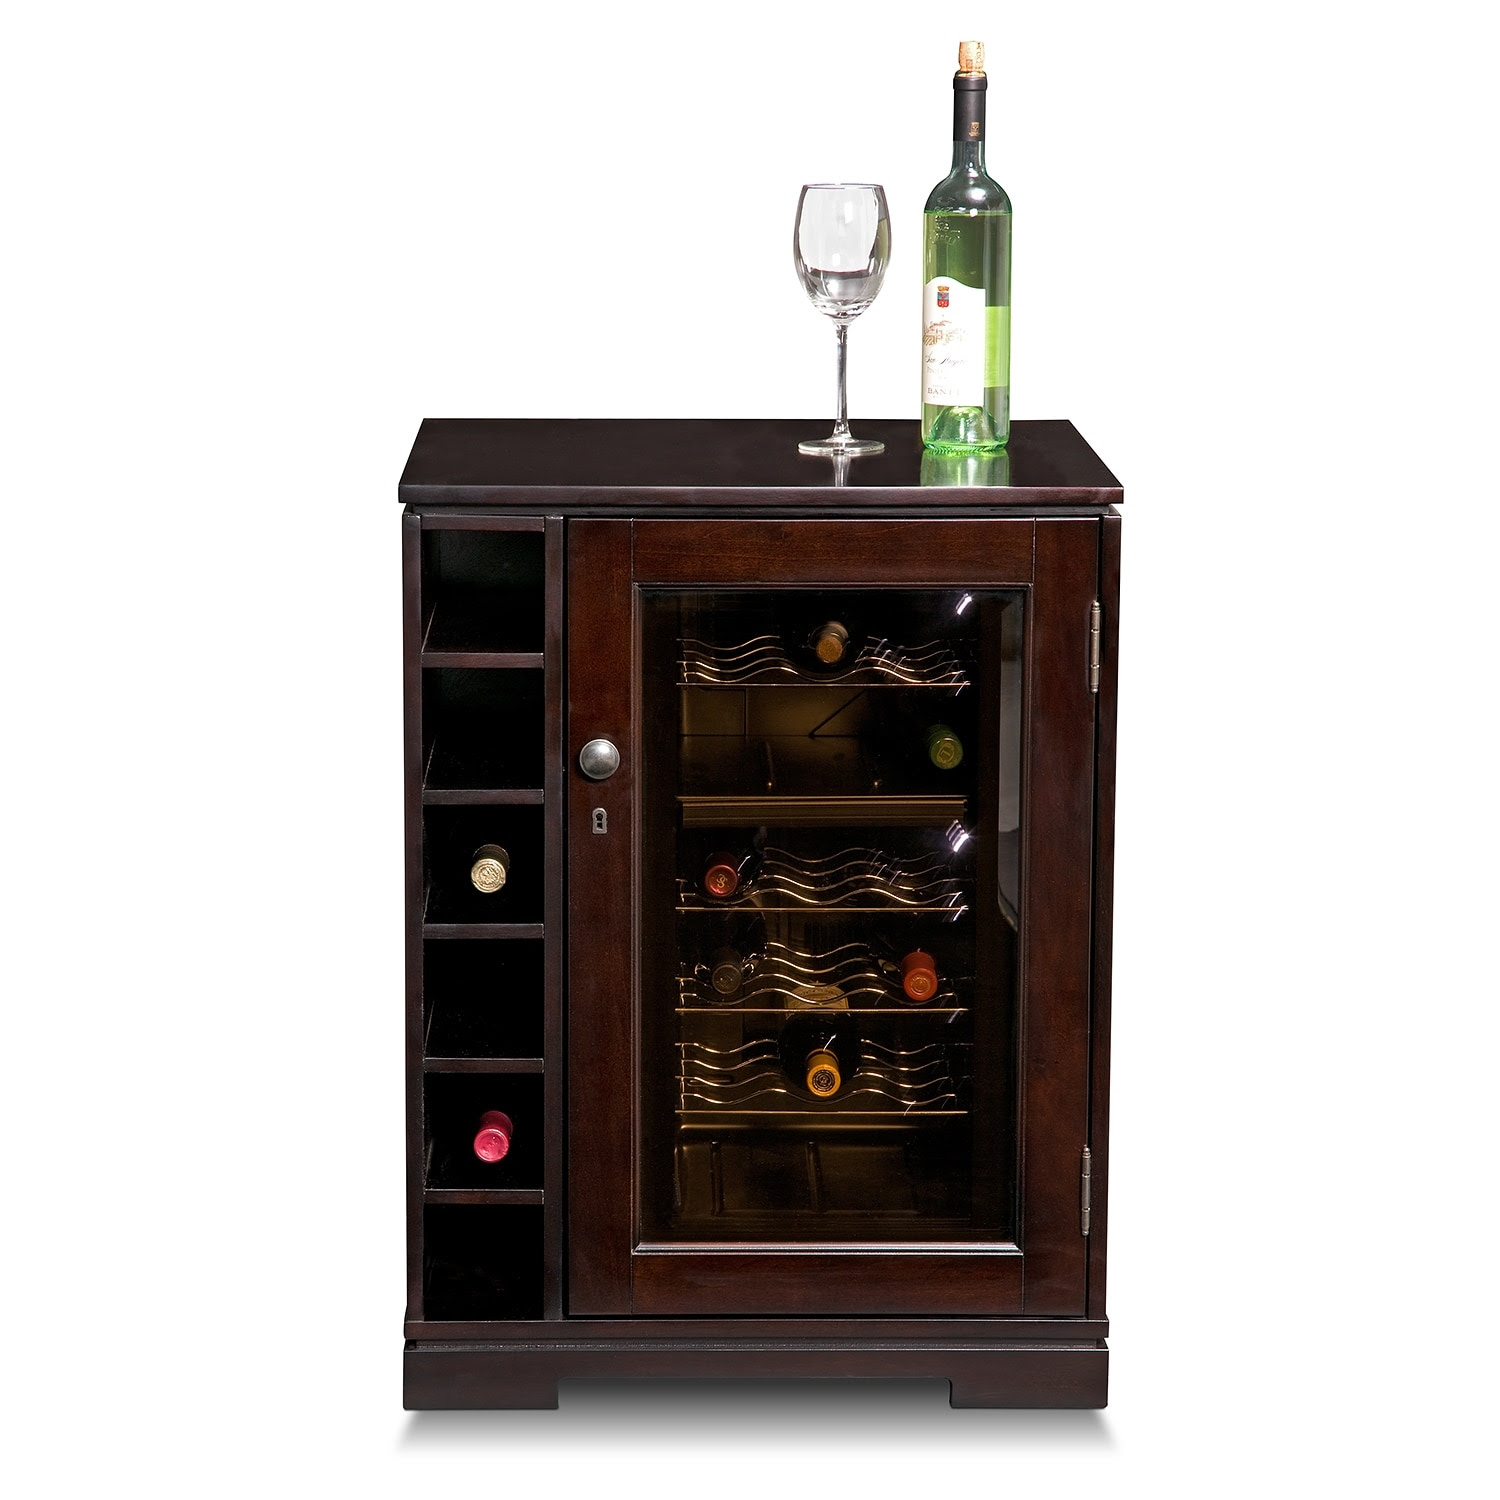 Wine Cooler CabiFurniture